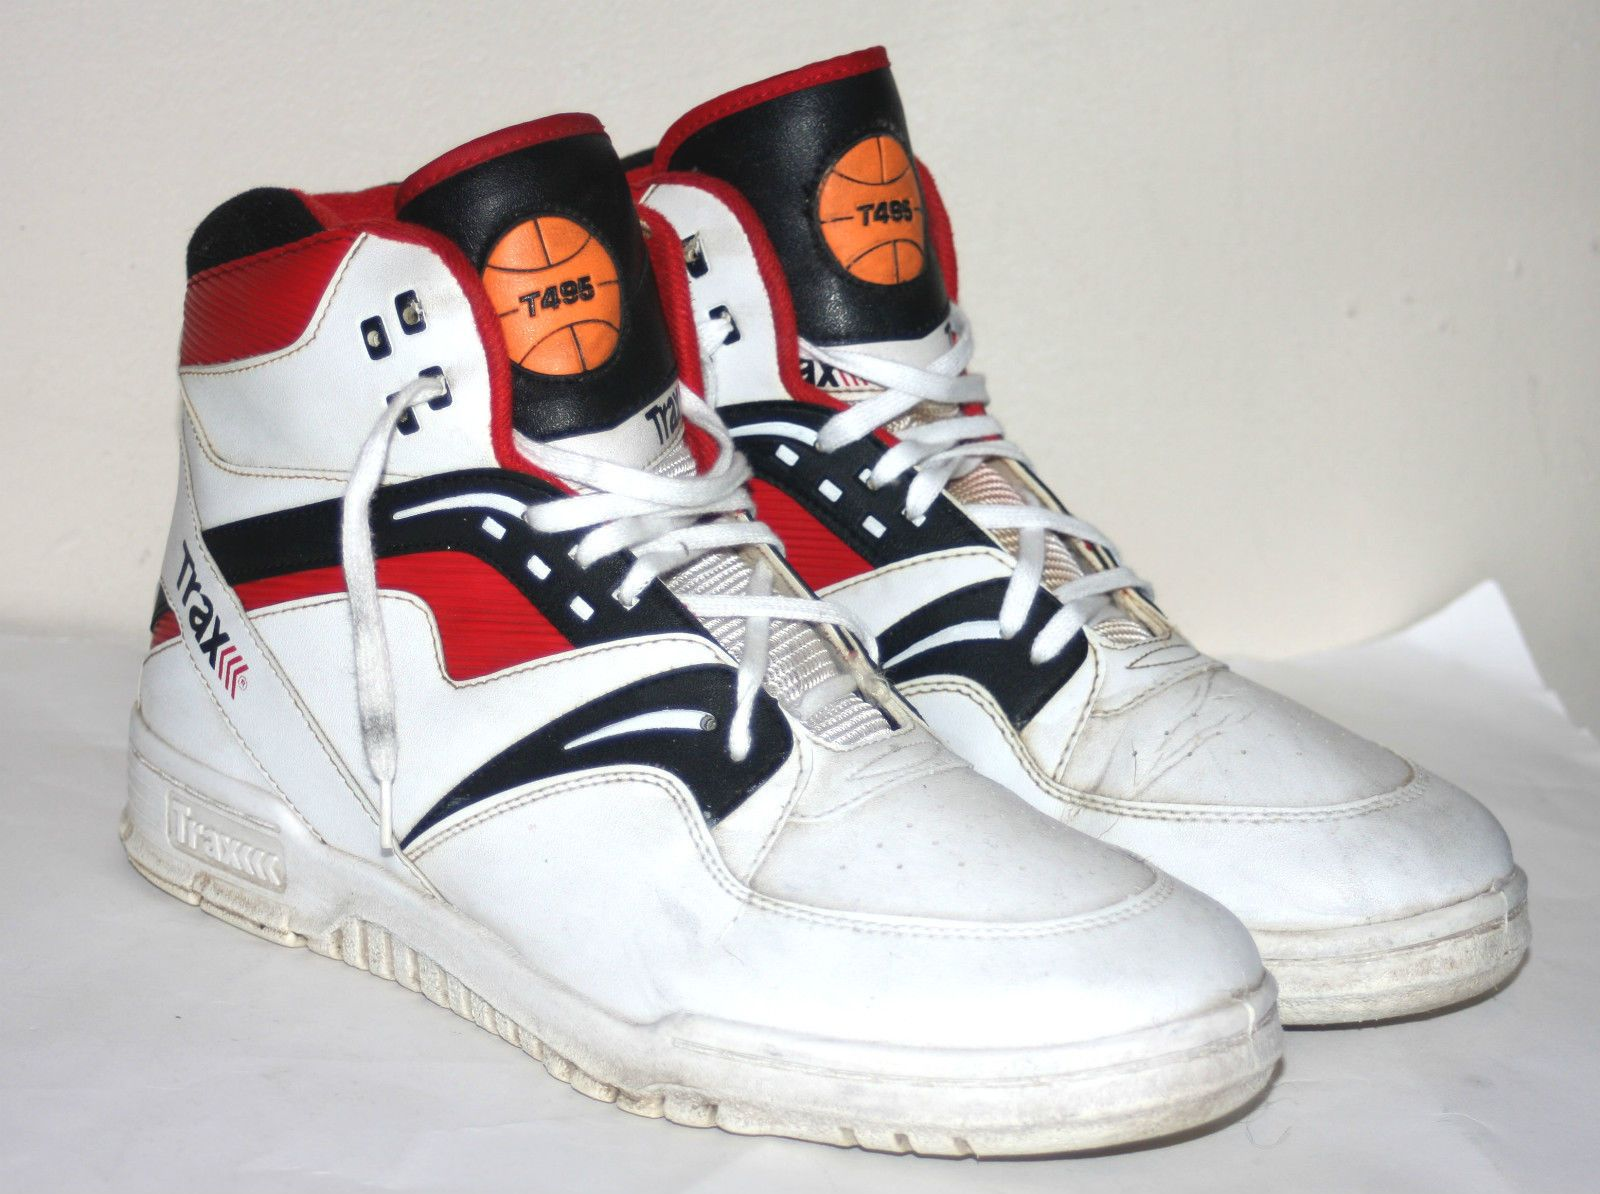 best service a2244 f49ff Vintage 1980s 1990s Trax High Top T495 Basketball Shoes Mens Size 11 Bi Way    eBay